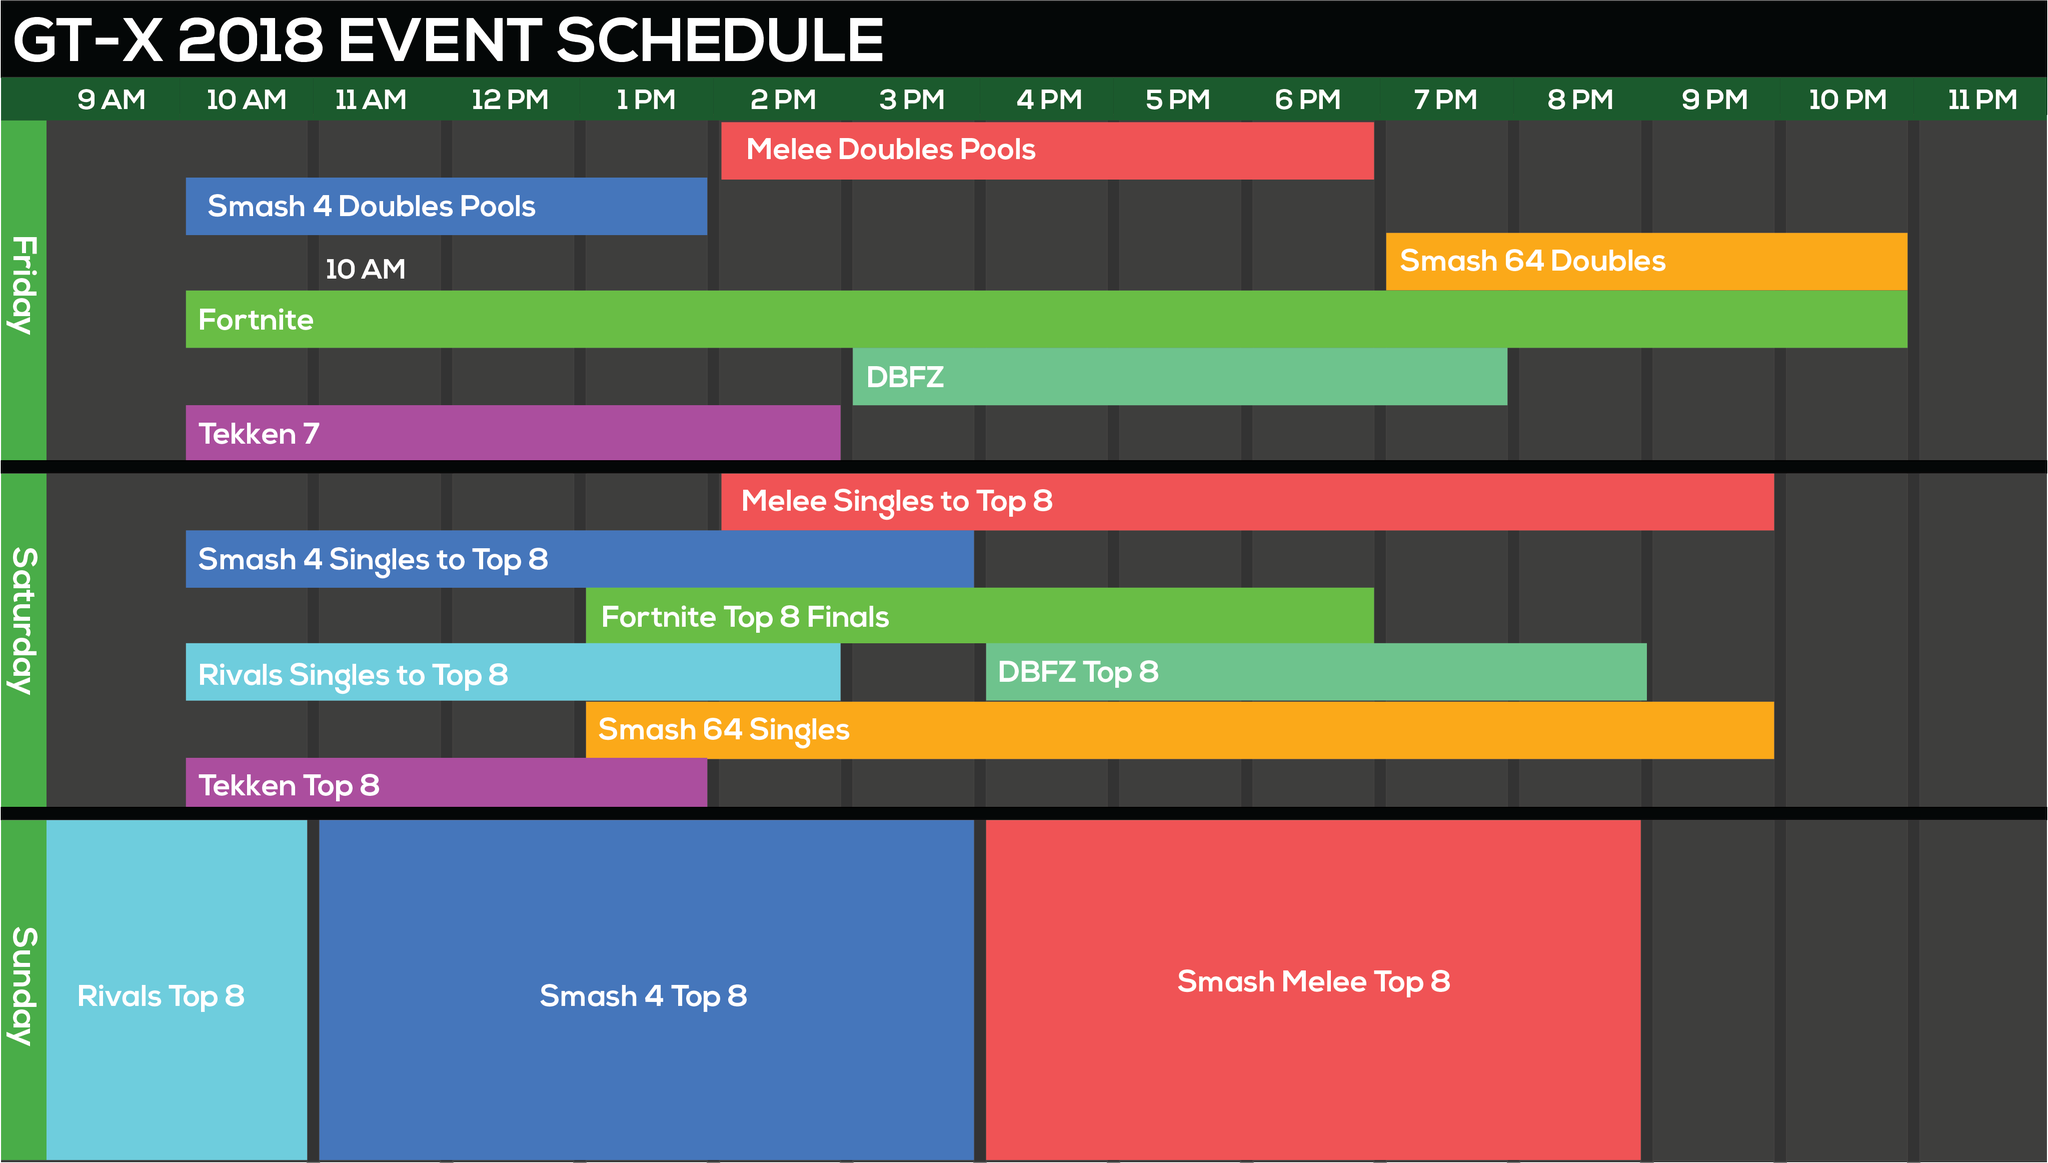 Game Tyrant Expo 2018 Event Schedule 1 out of 1 image gallery